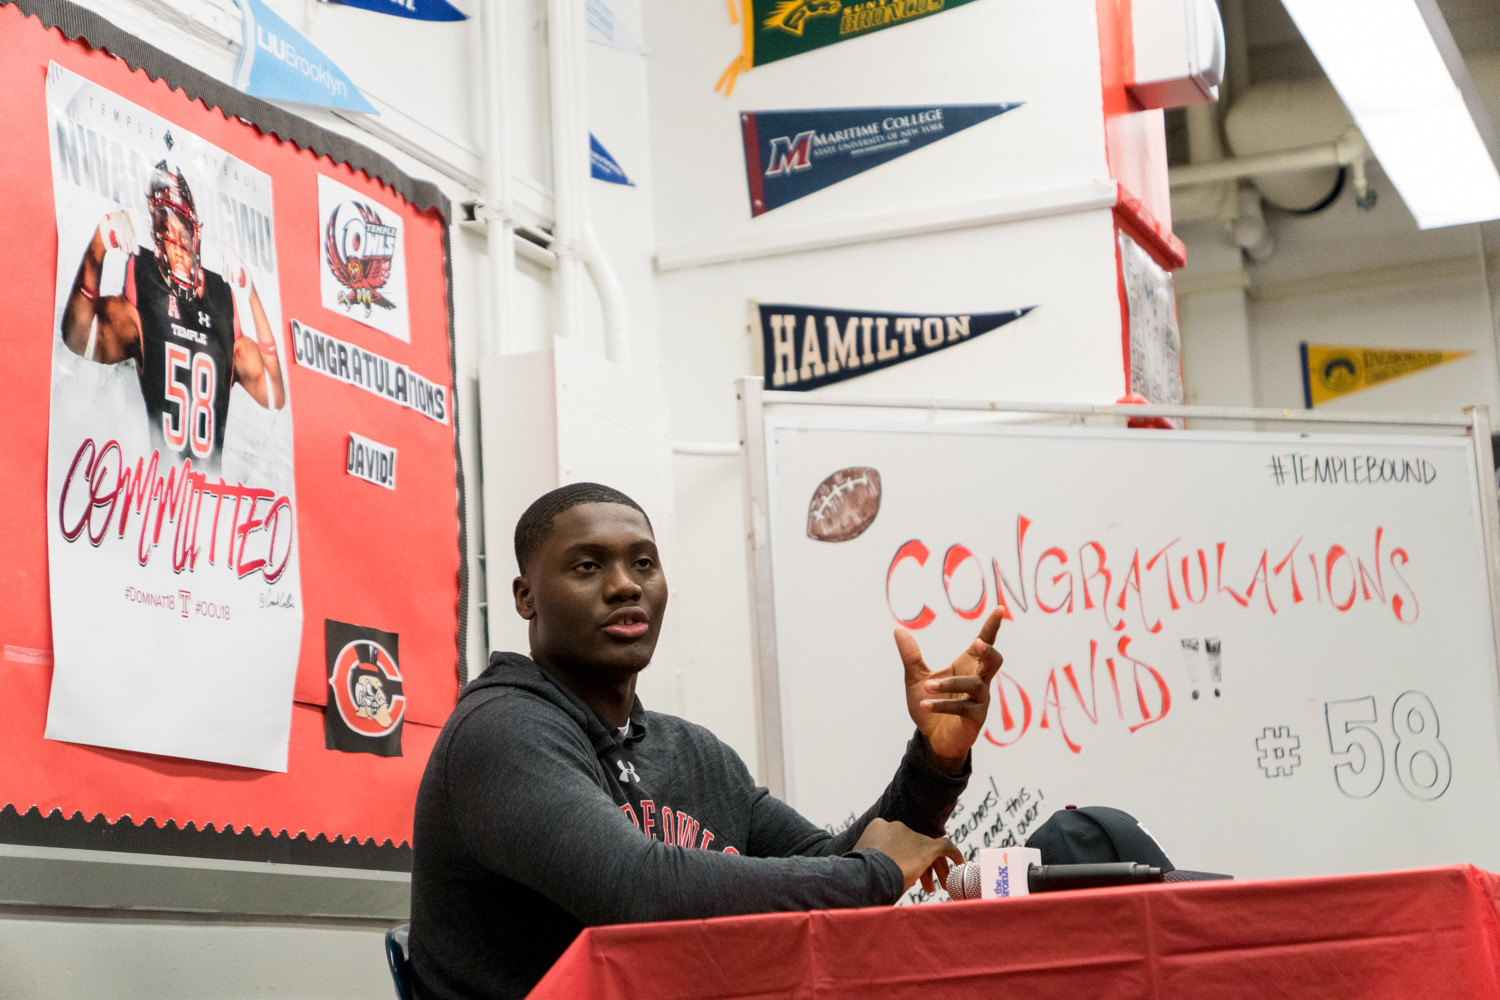 Clinton High School defensive end David Nwaogwugwu makes it official, he's off to Temple on a football scholarship.